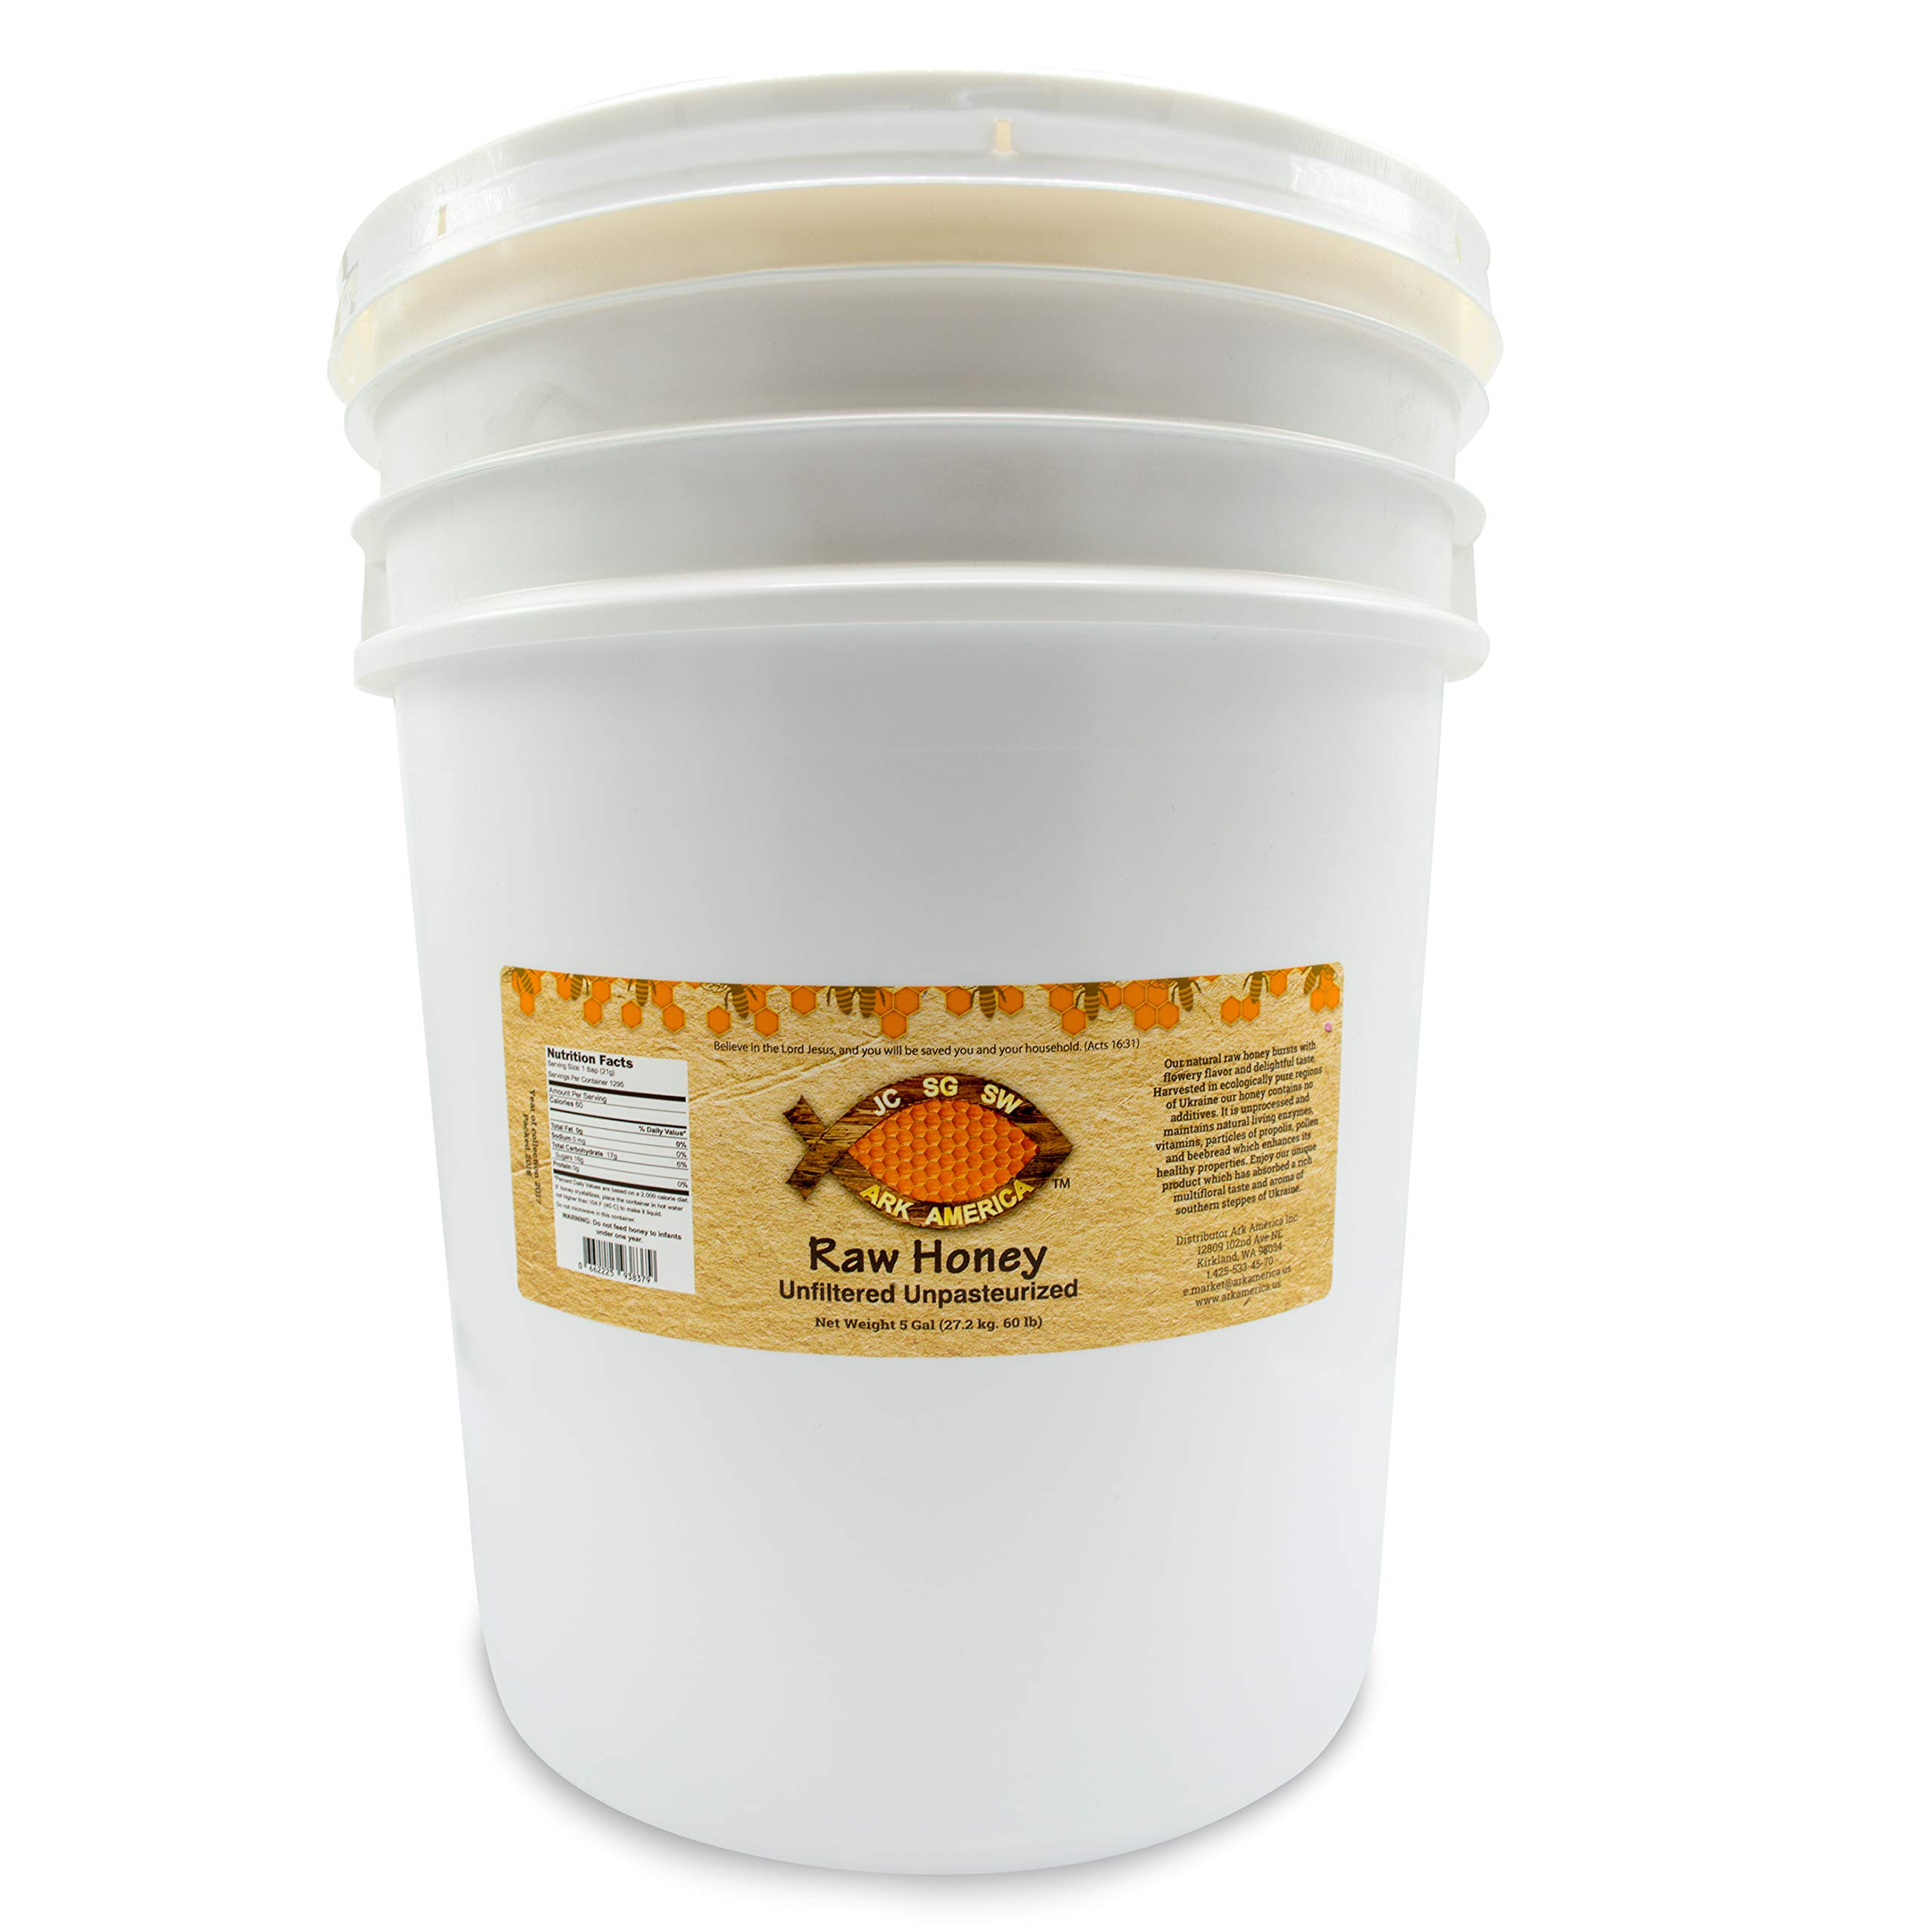 Raw Honey, Unfiltered, Unpasteurized 5 Gal (27.2 kg. 60 lb)(really real and natural)